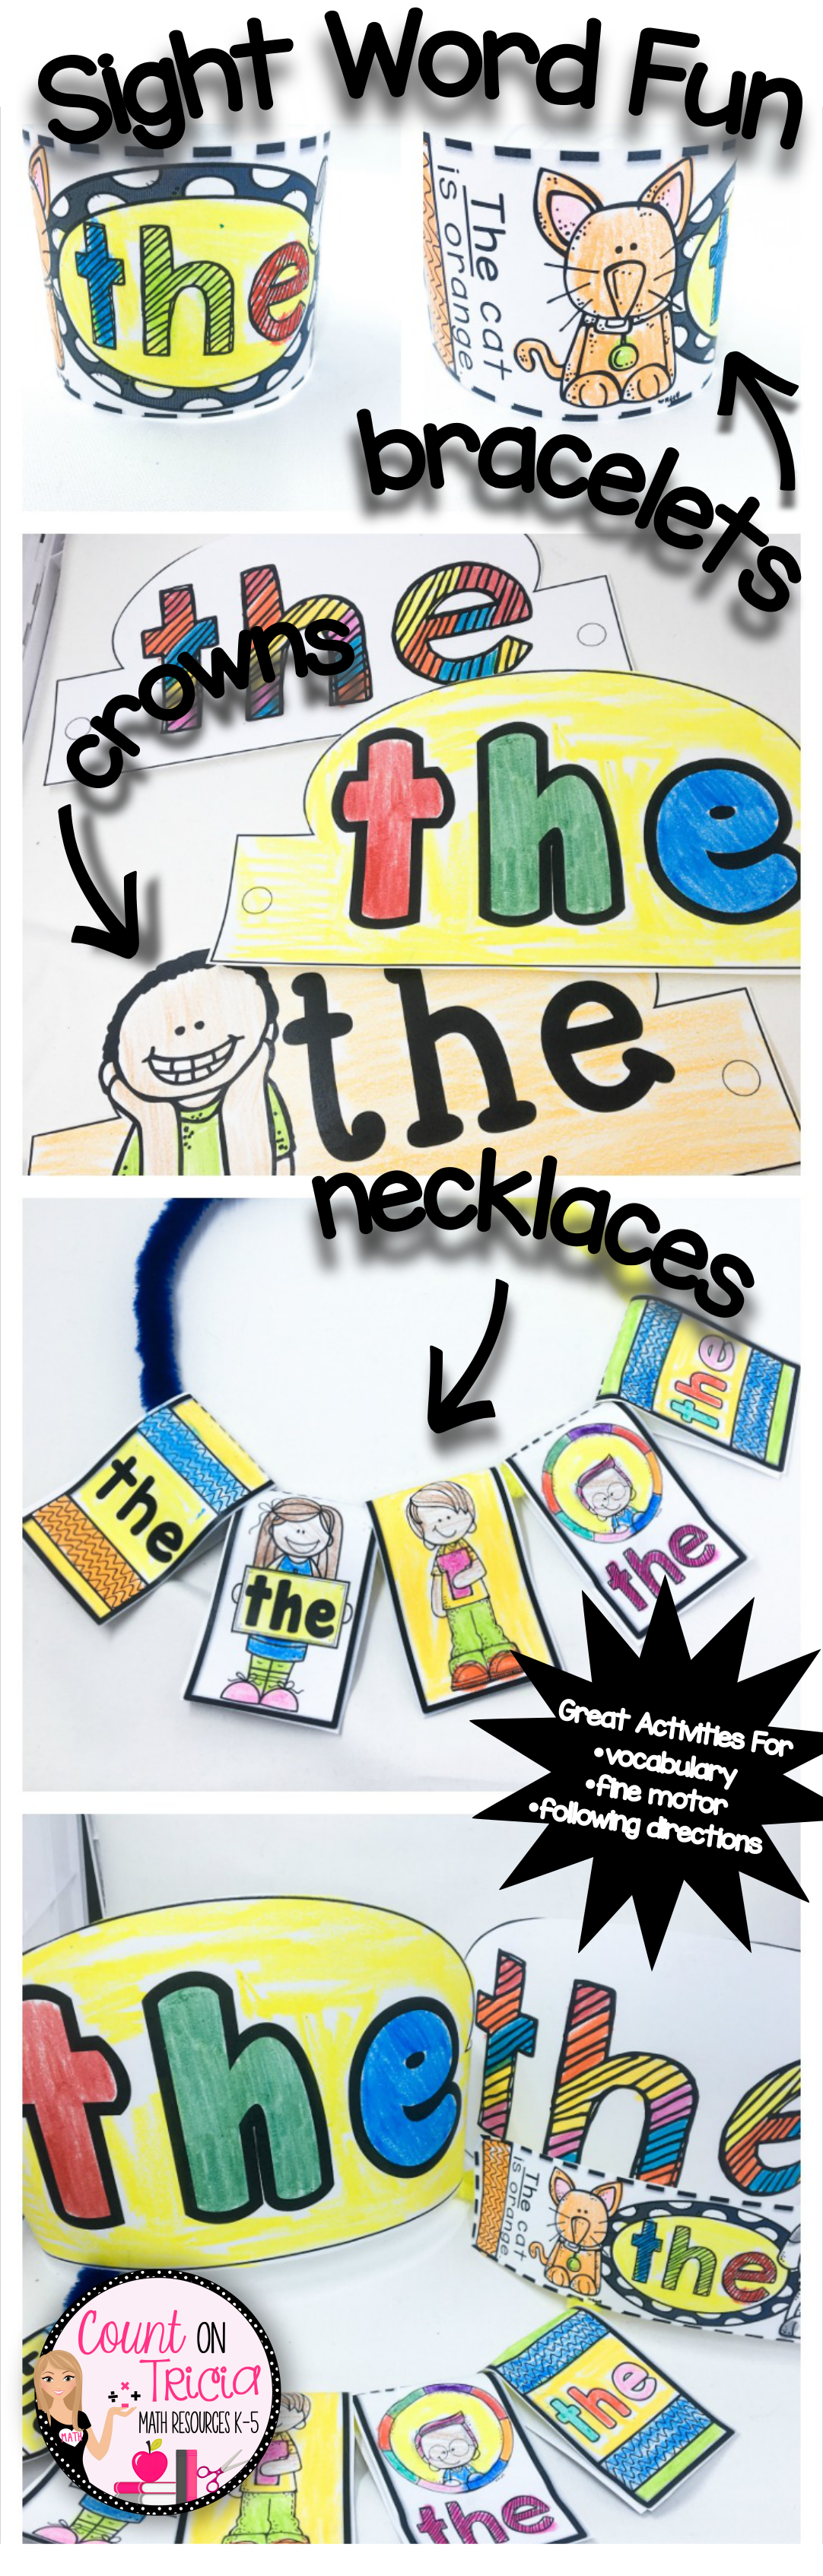 Sight Word Fun Create Sight Word Headbands Necklaces And